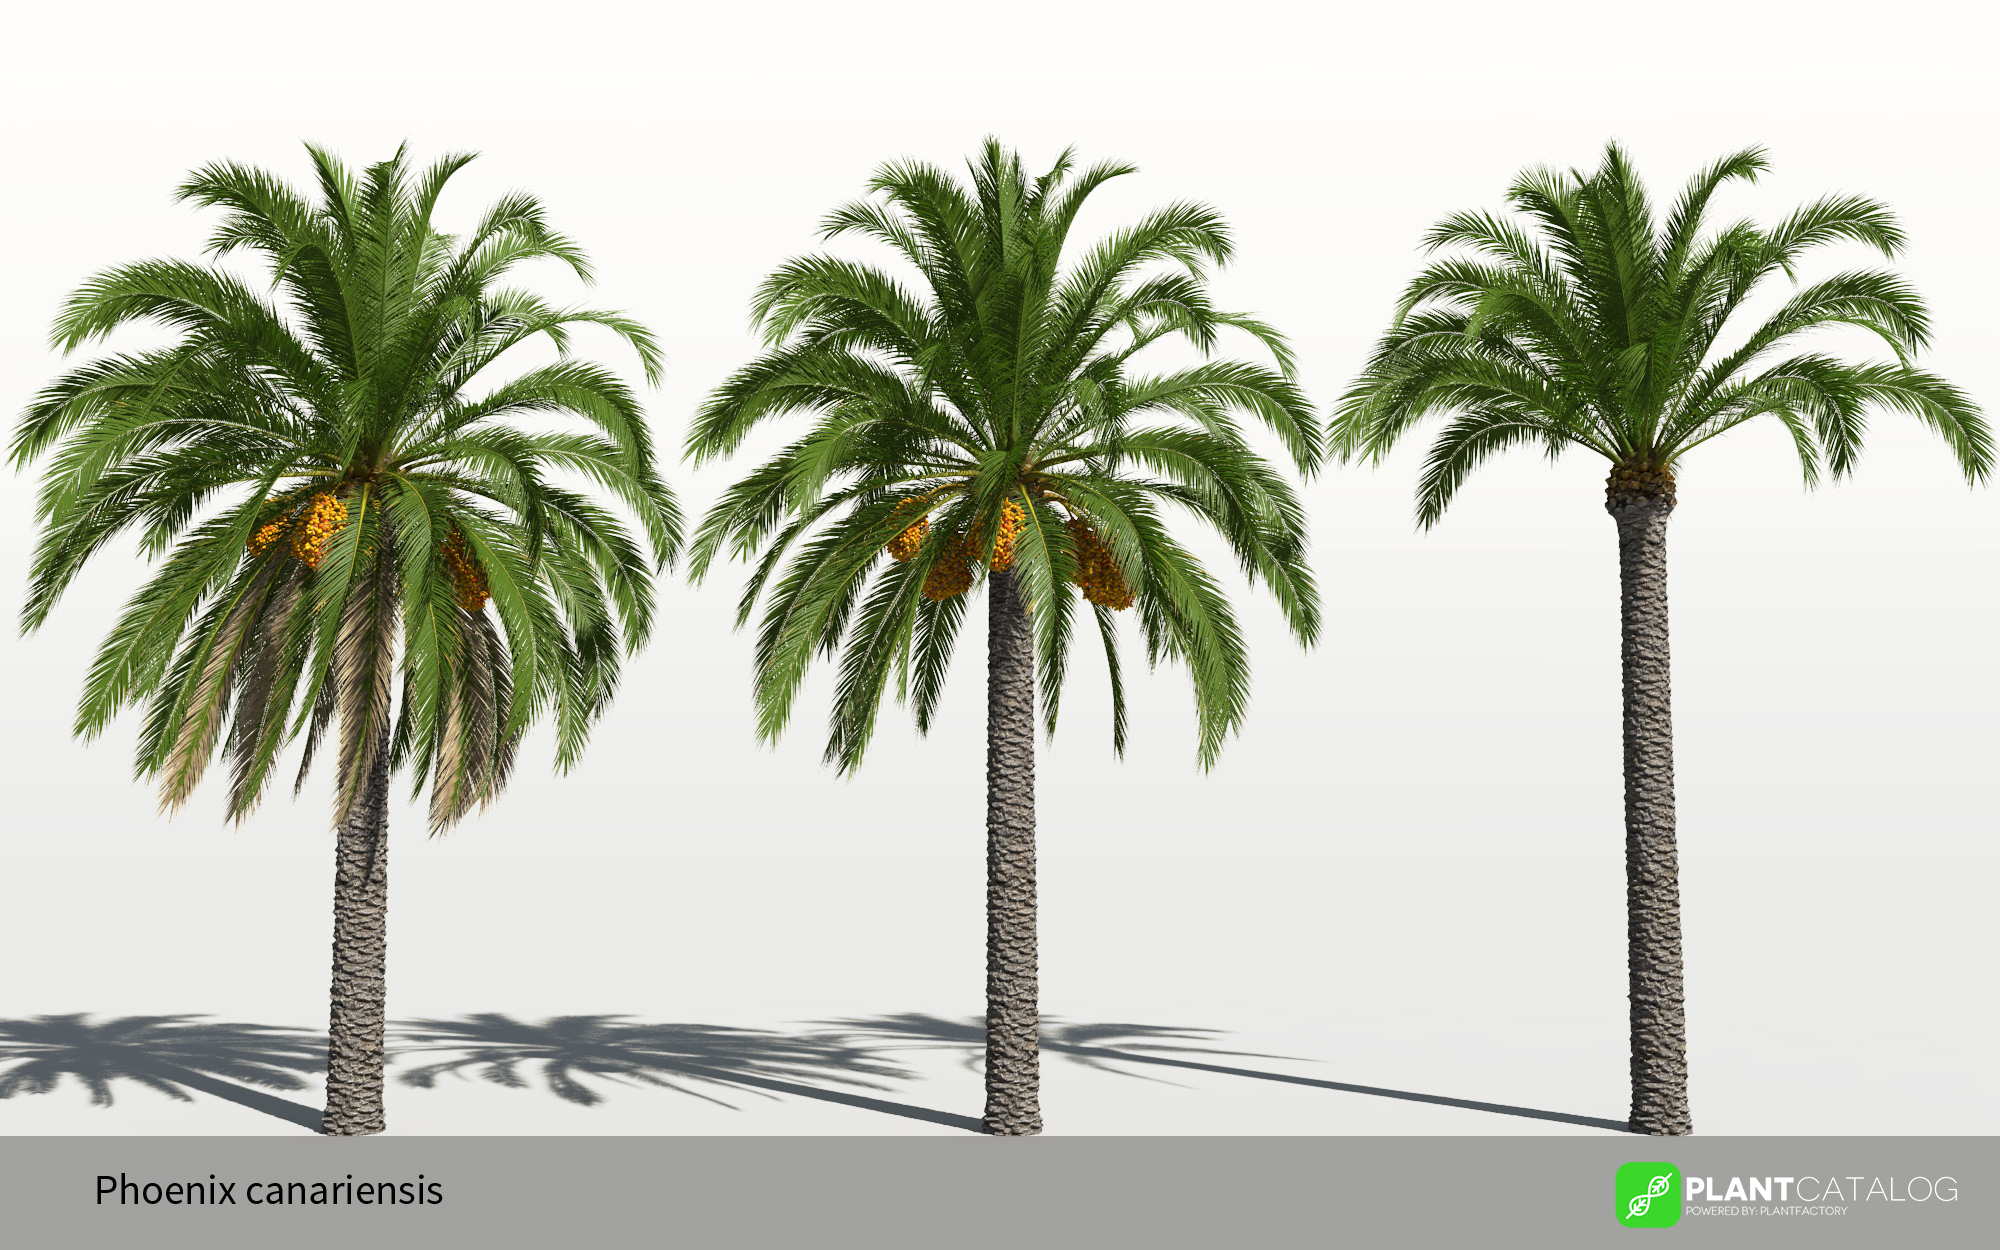 3D model of the Canary Island date palm - Phoenix canariensis - from the PlantCatalog, rendered in VUE